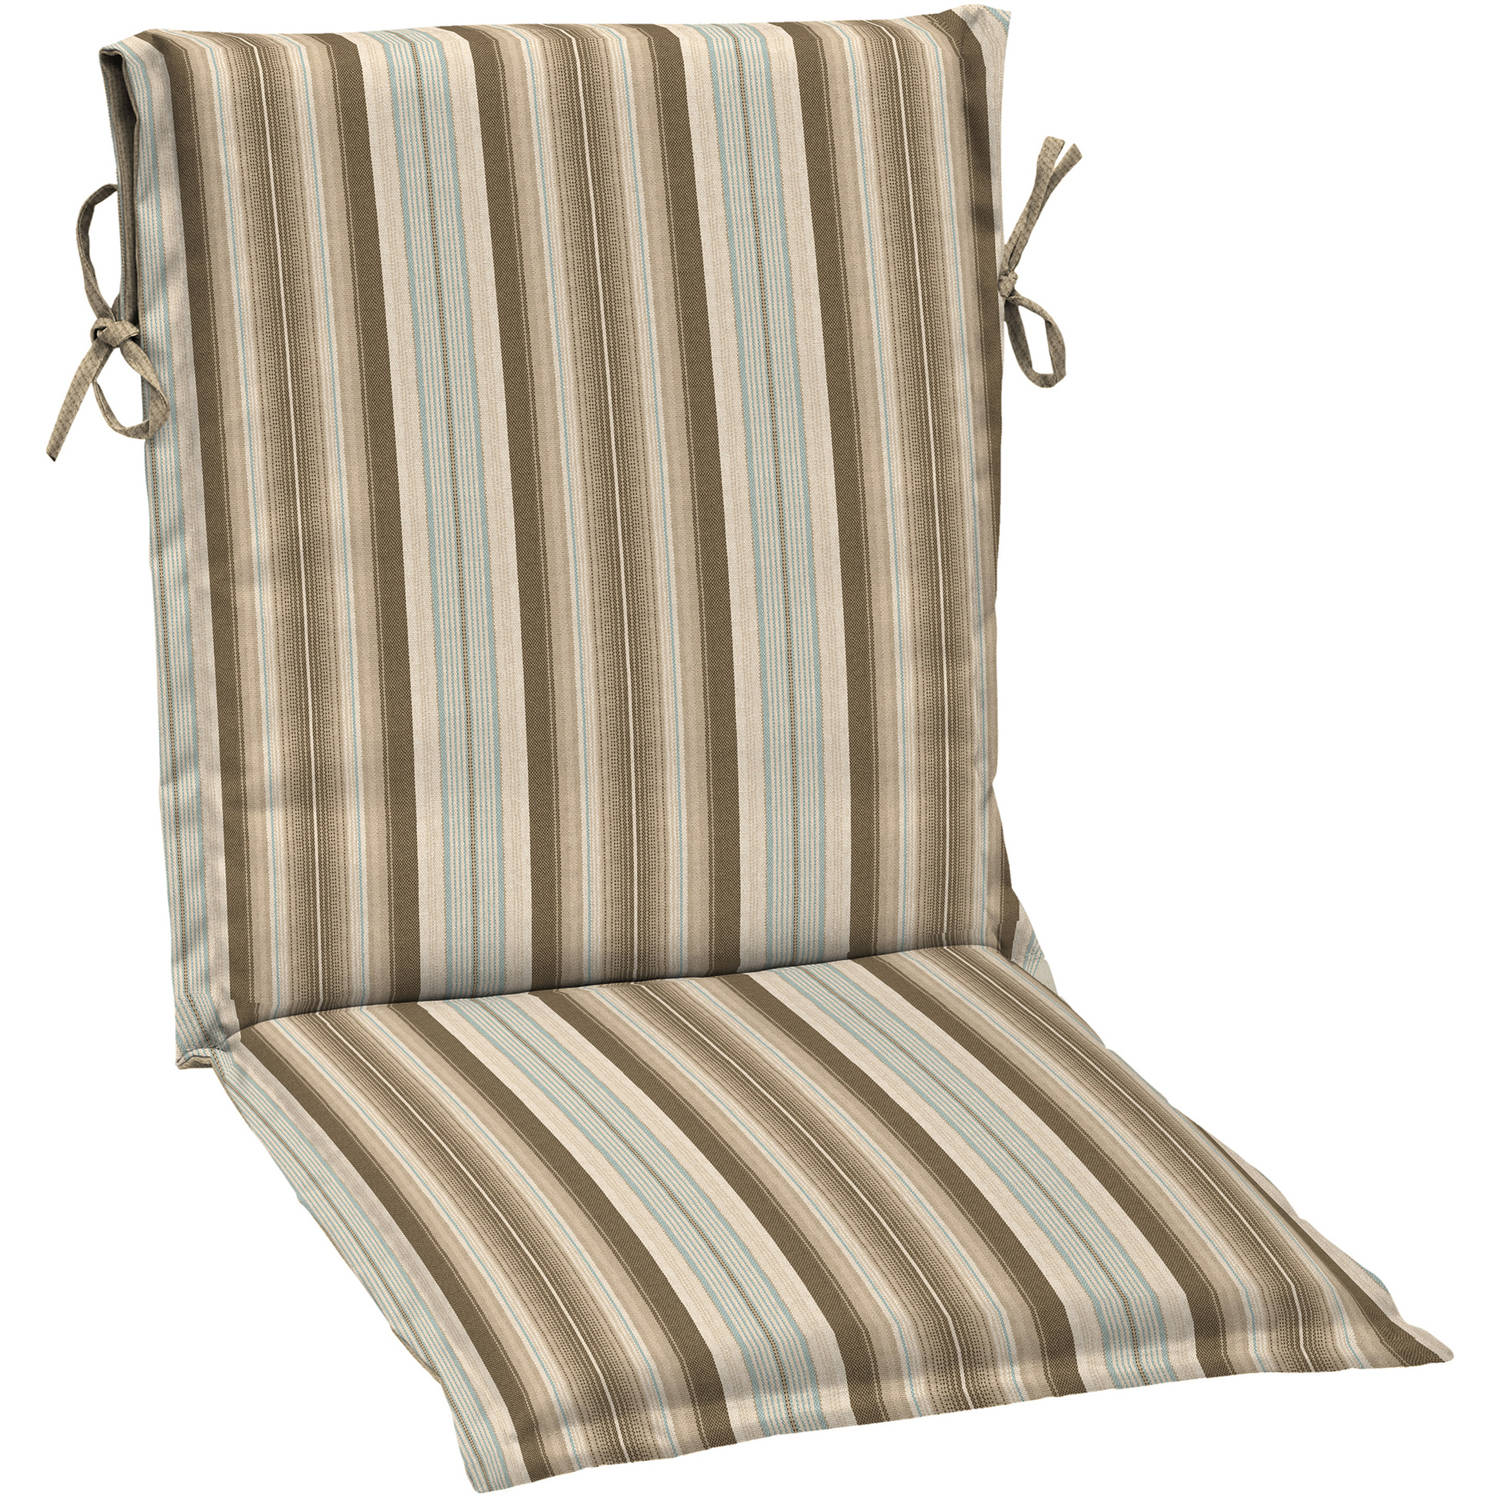 Better Homes and Gardens Outdoor Patio Reversible Sling Chair